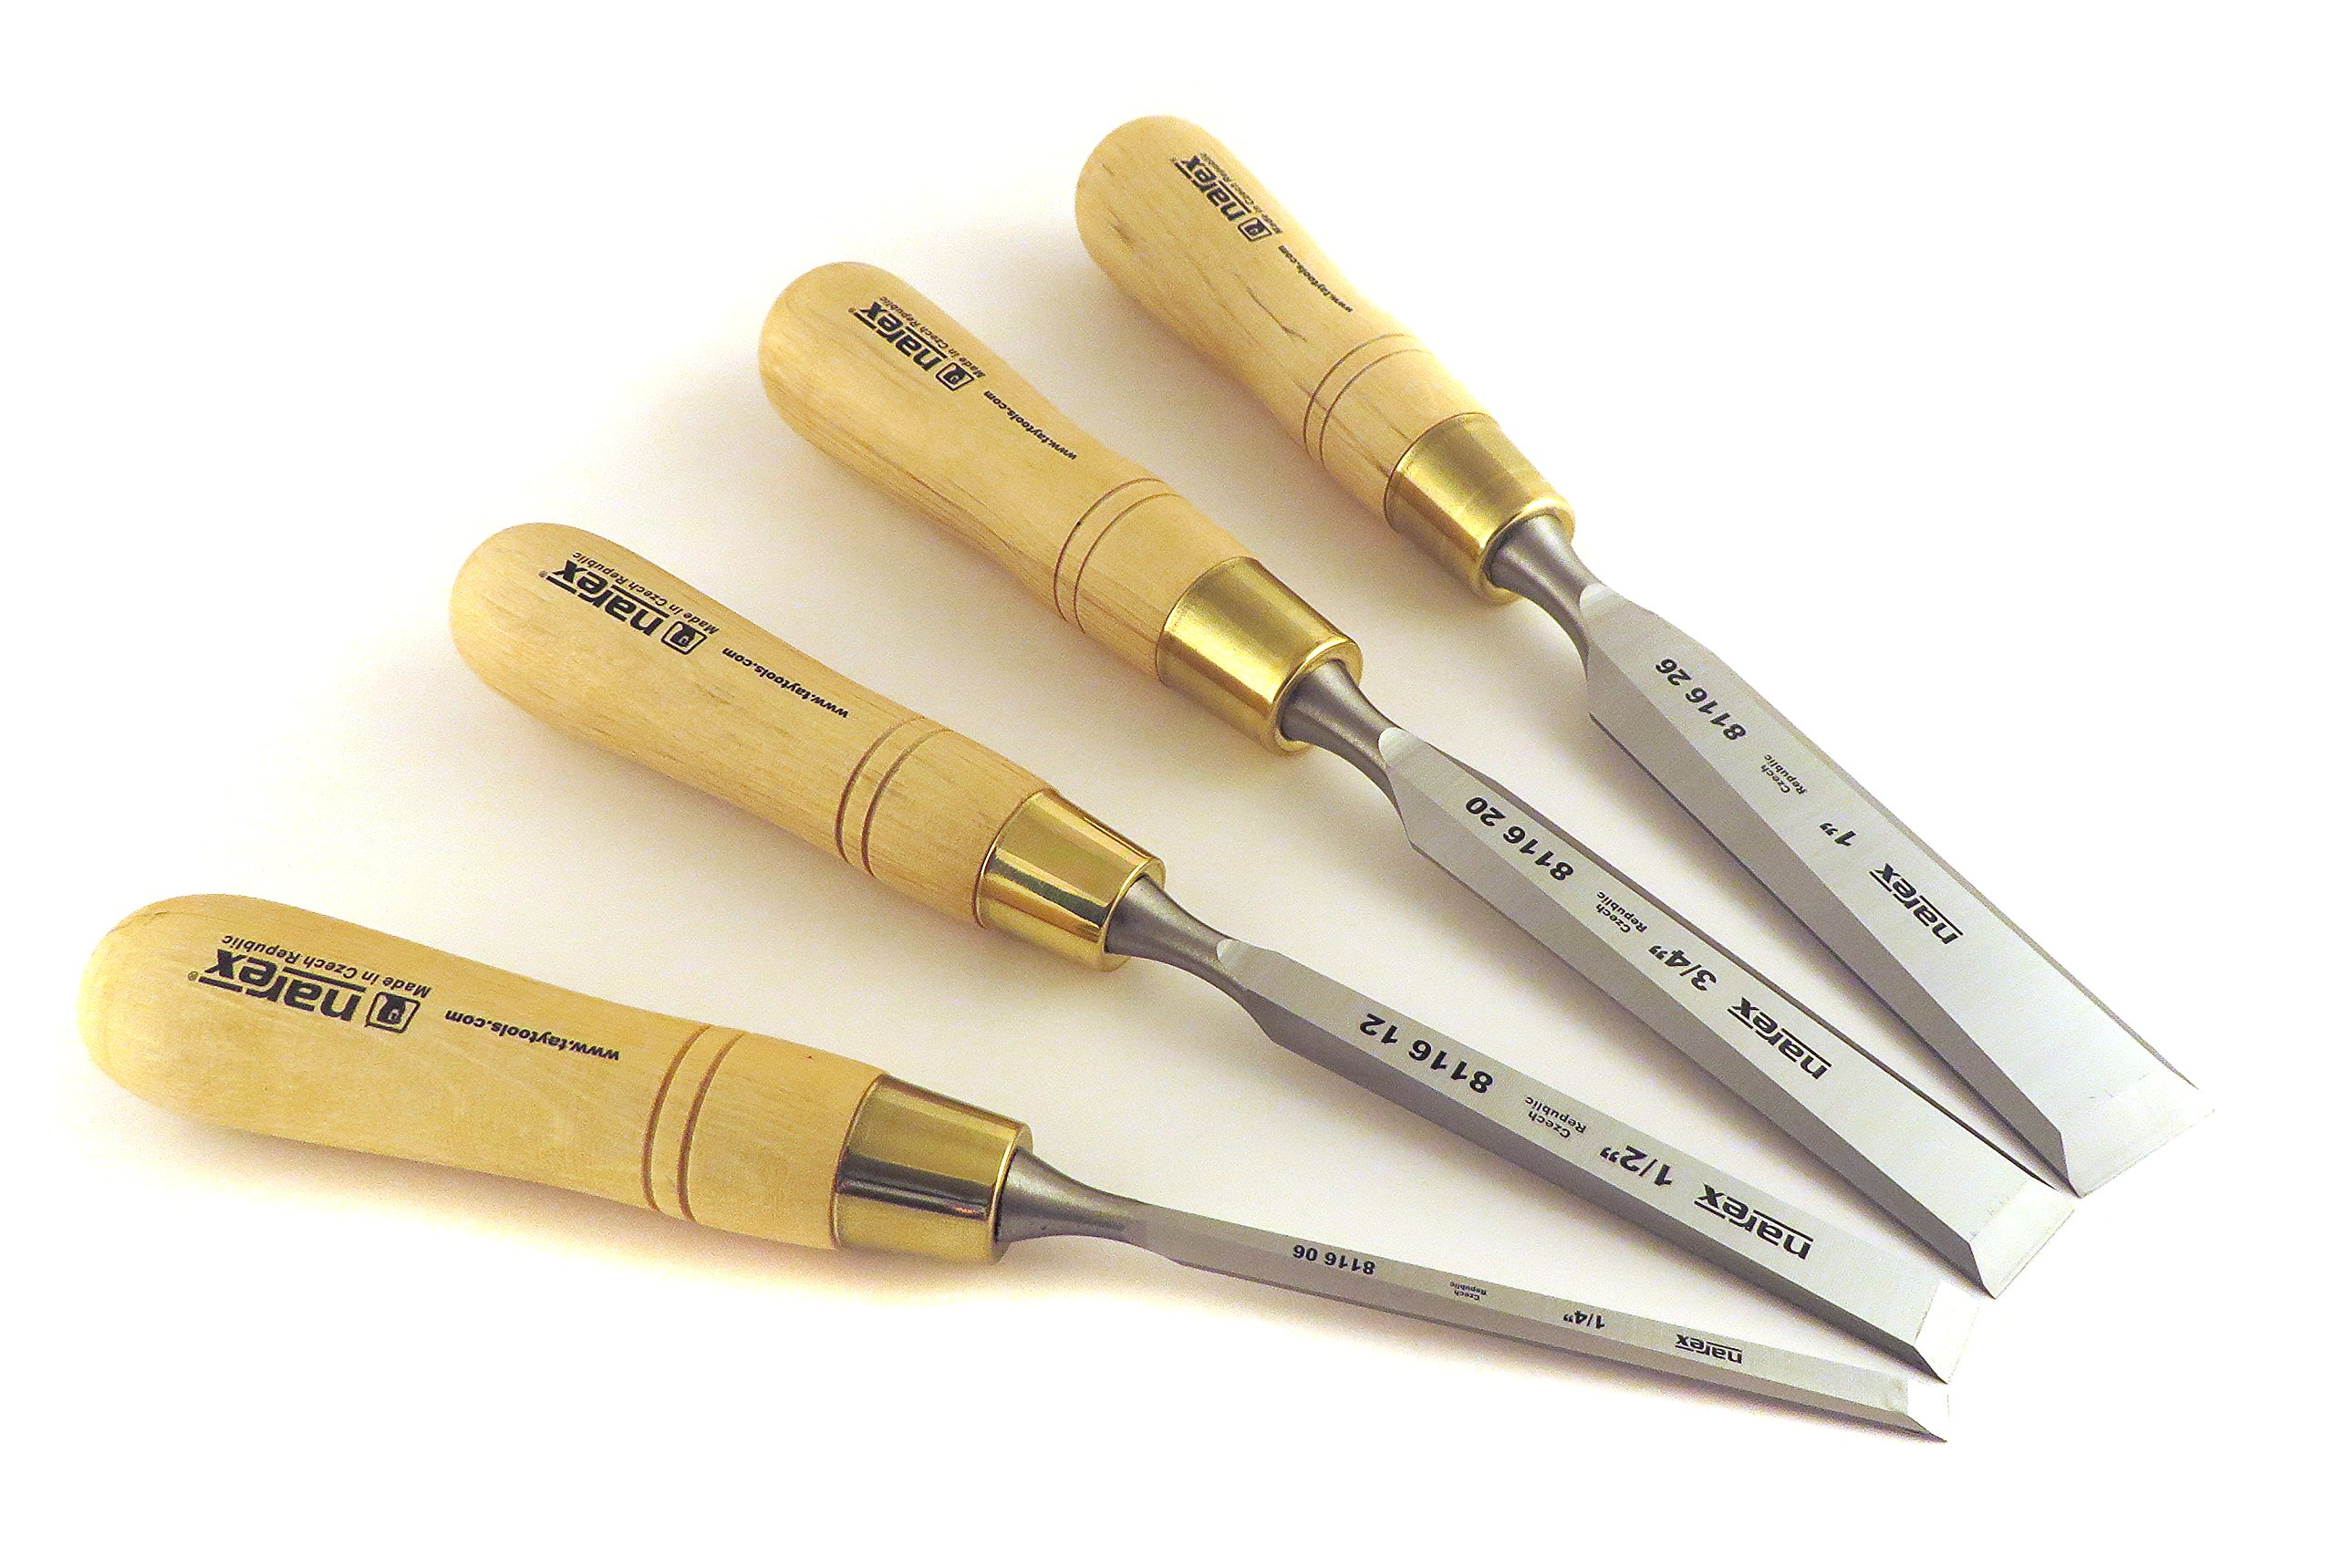 Narex Czech Steel Premium 4 pc Set True Imperial 1/4'', 1/2'', 3/4'', 1'' Bench Cabinetmaker Chisels w/ Hornbeam Handles 863251 by Narex